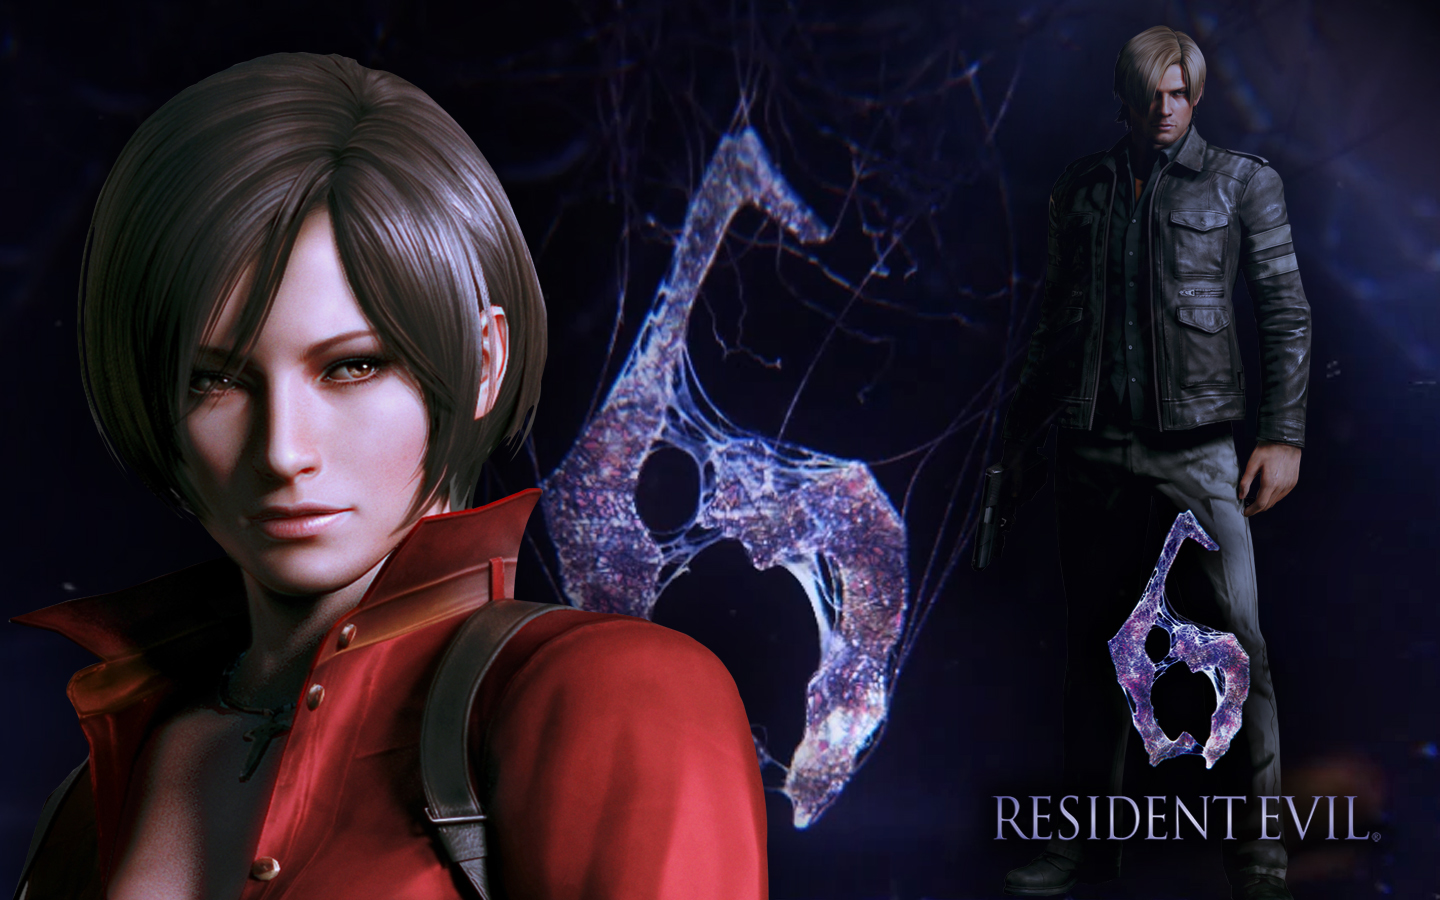 Ada And Leon Resident Evil 6 Wallpaper By Pvlimota On Deviantart